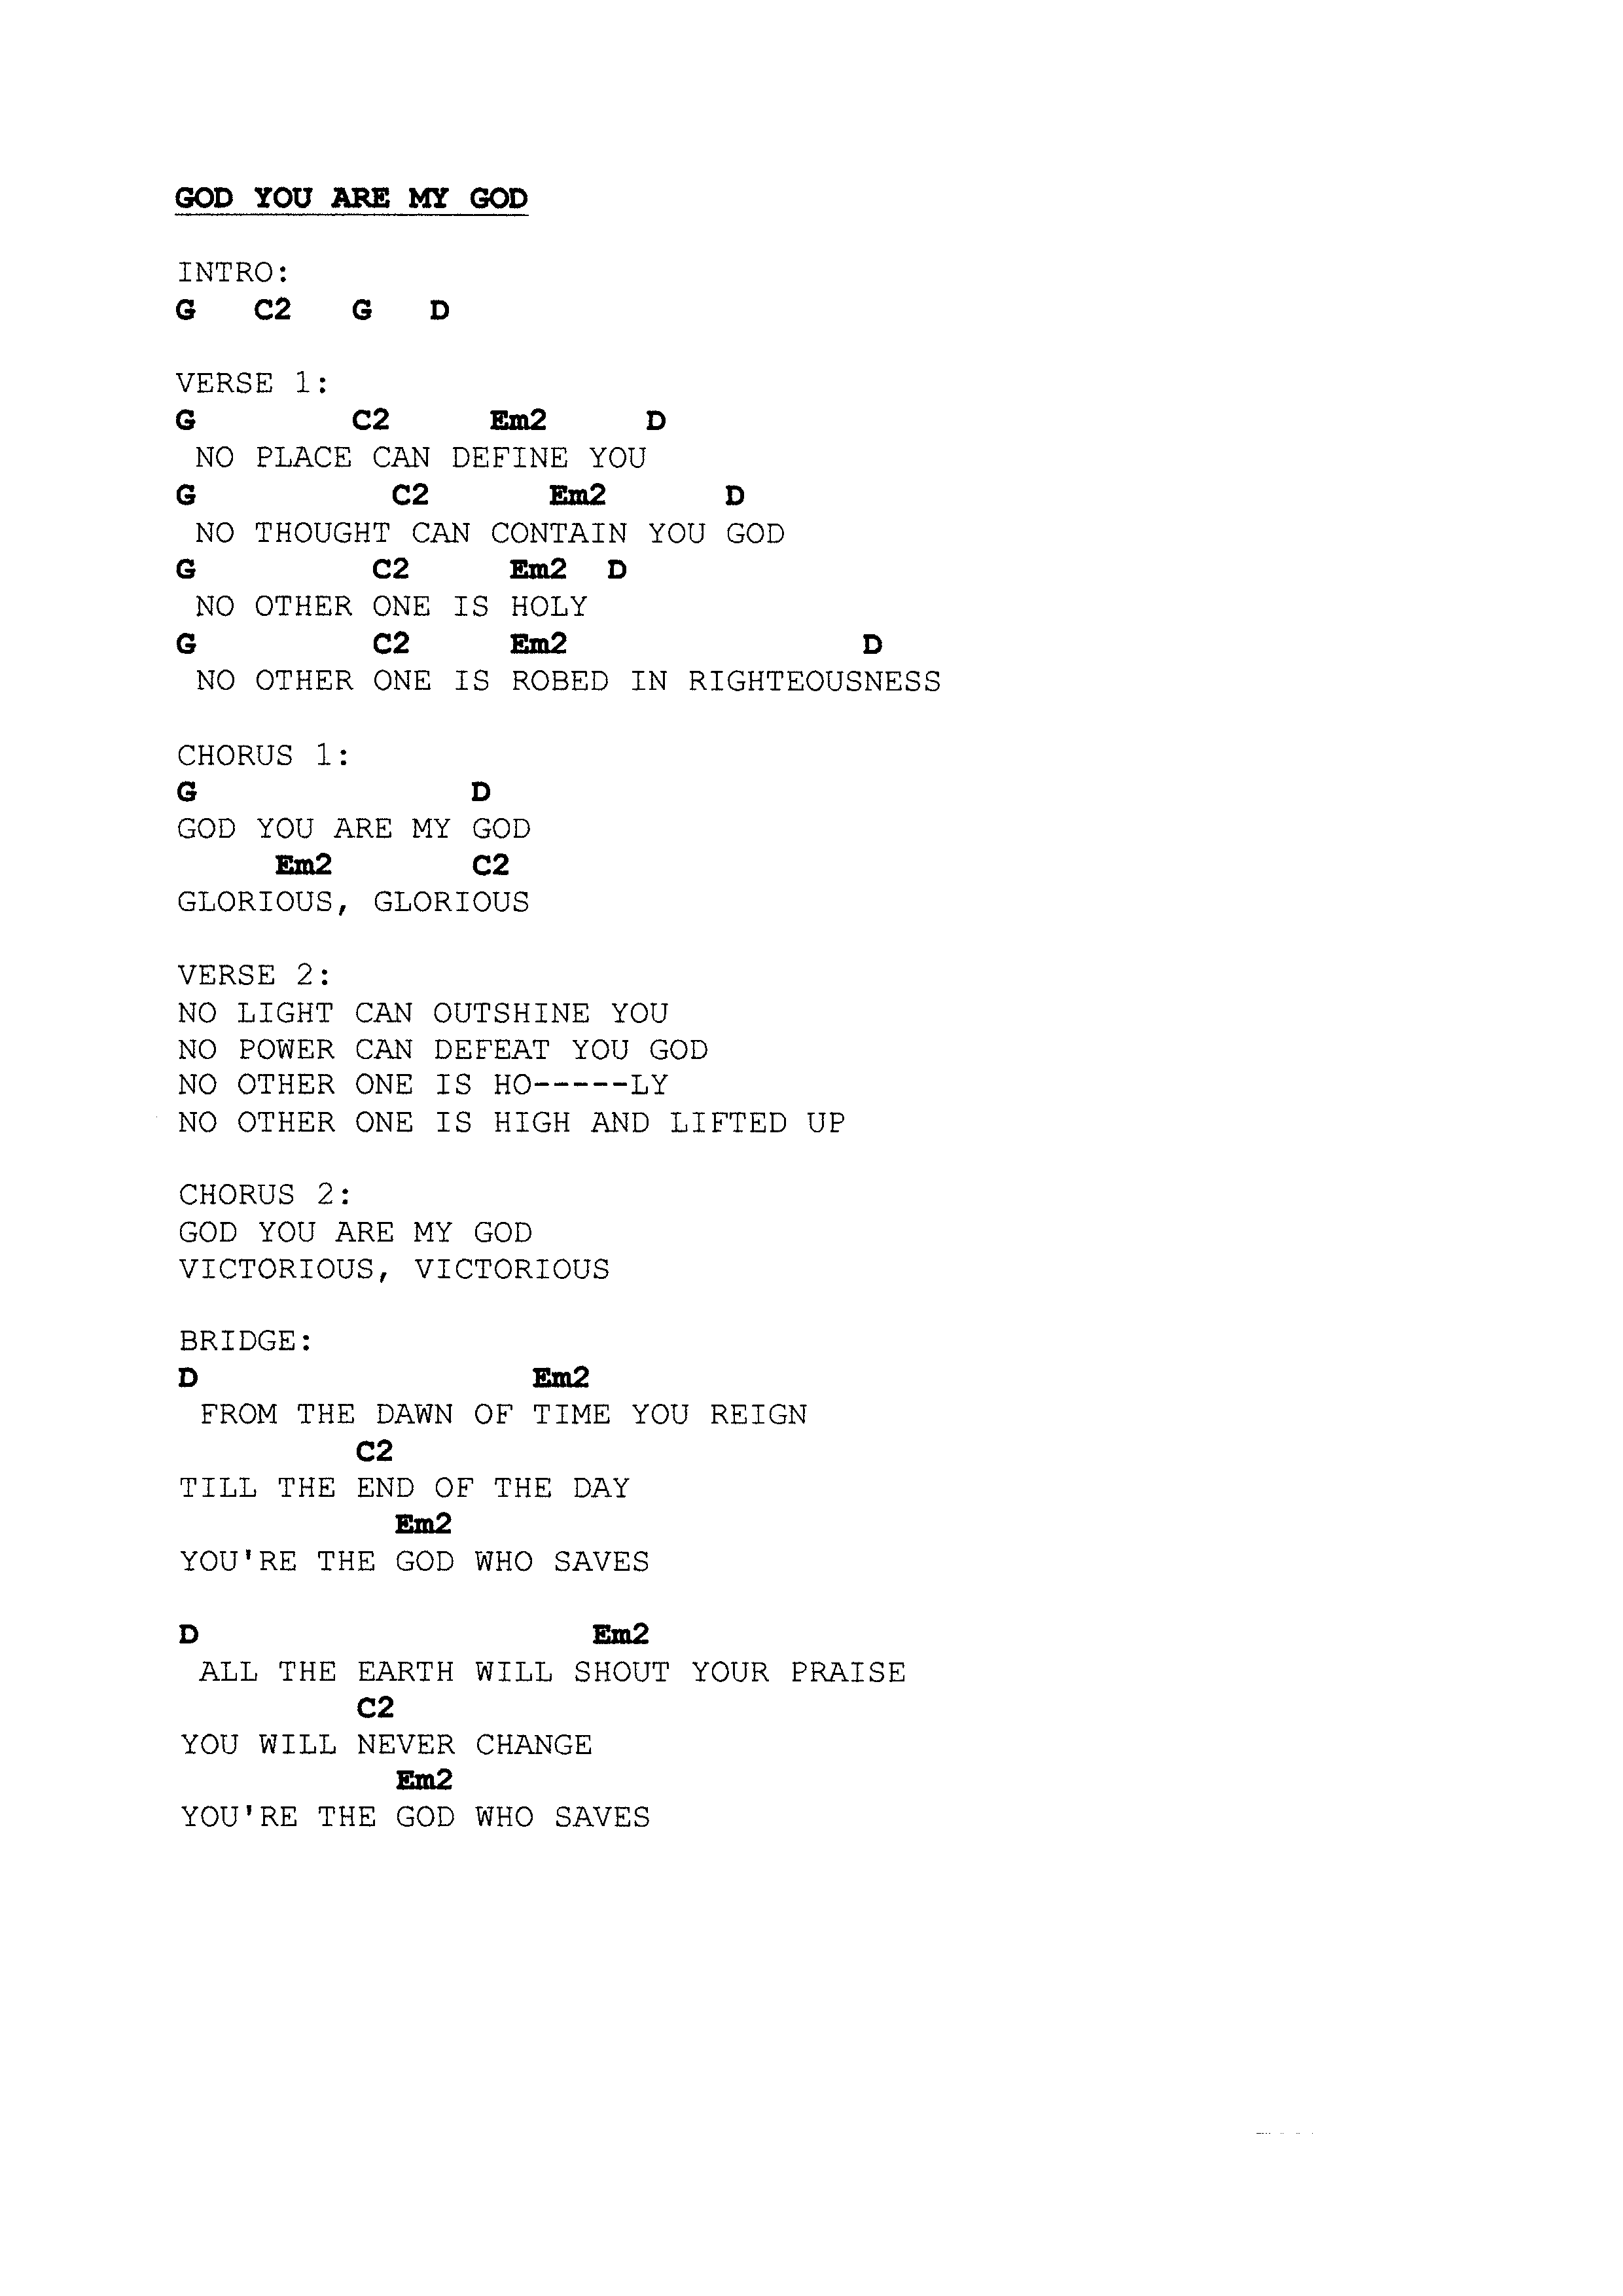 Praise worship chords page 12 the idiot in me god you are my god hexwebz Choice Image